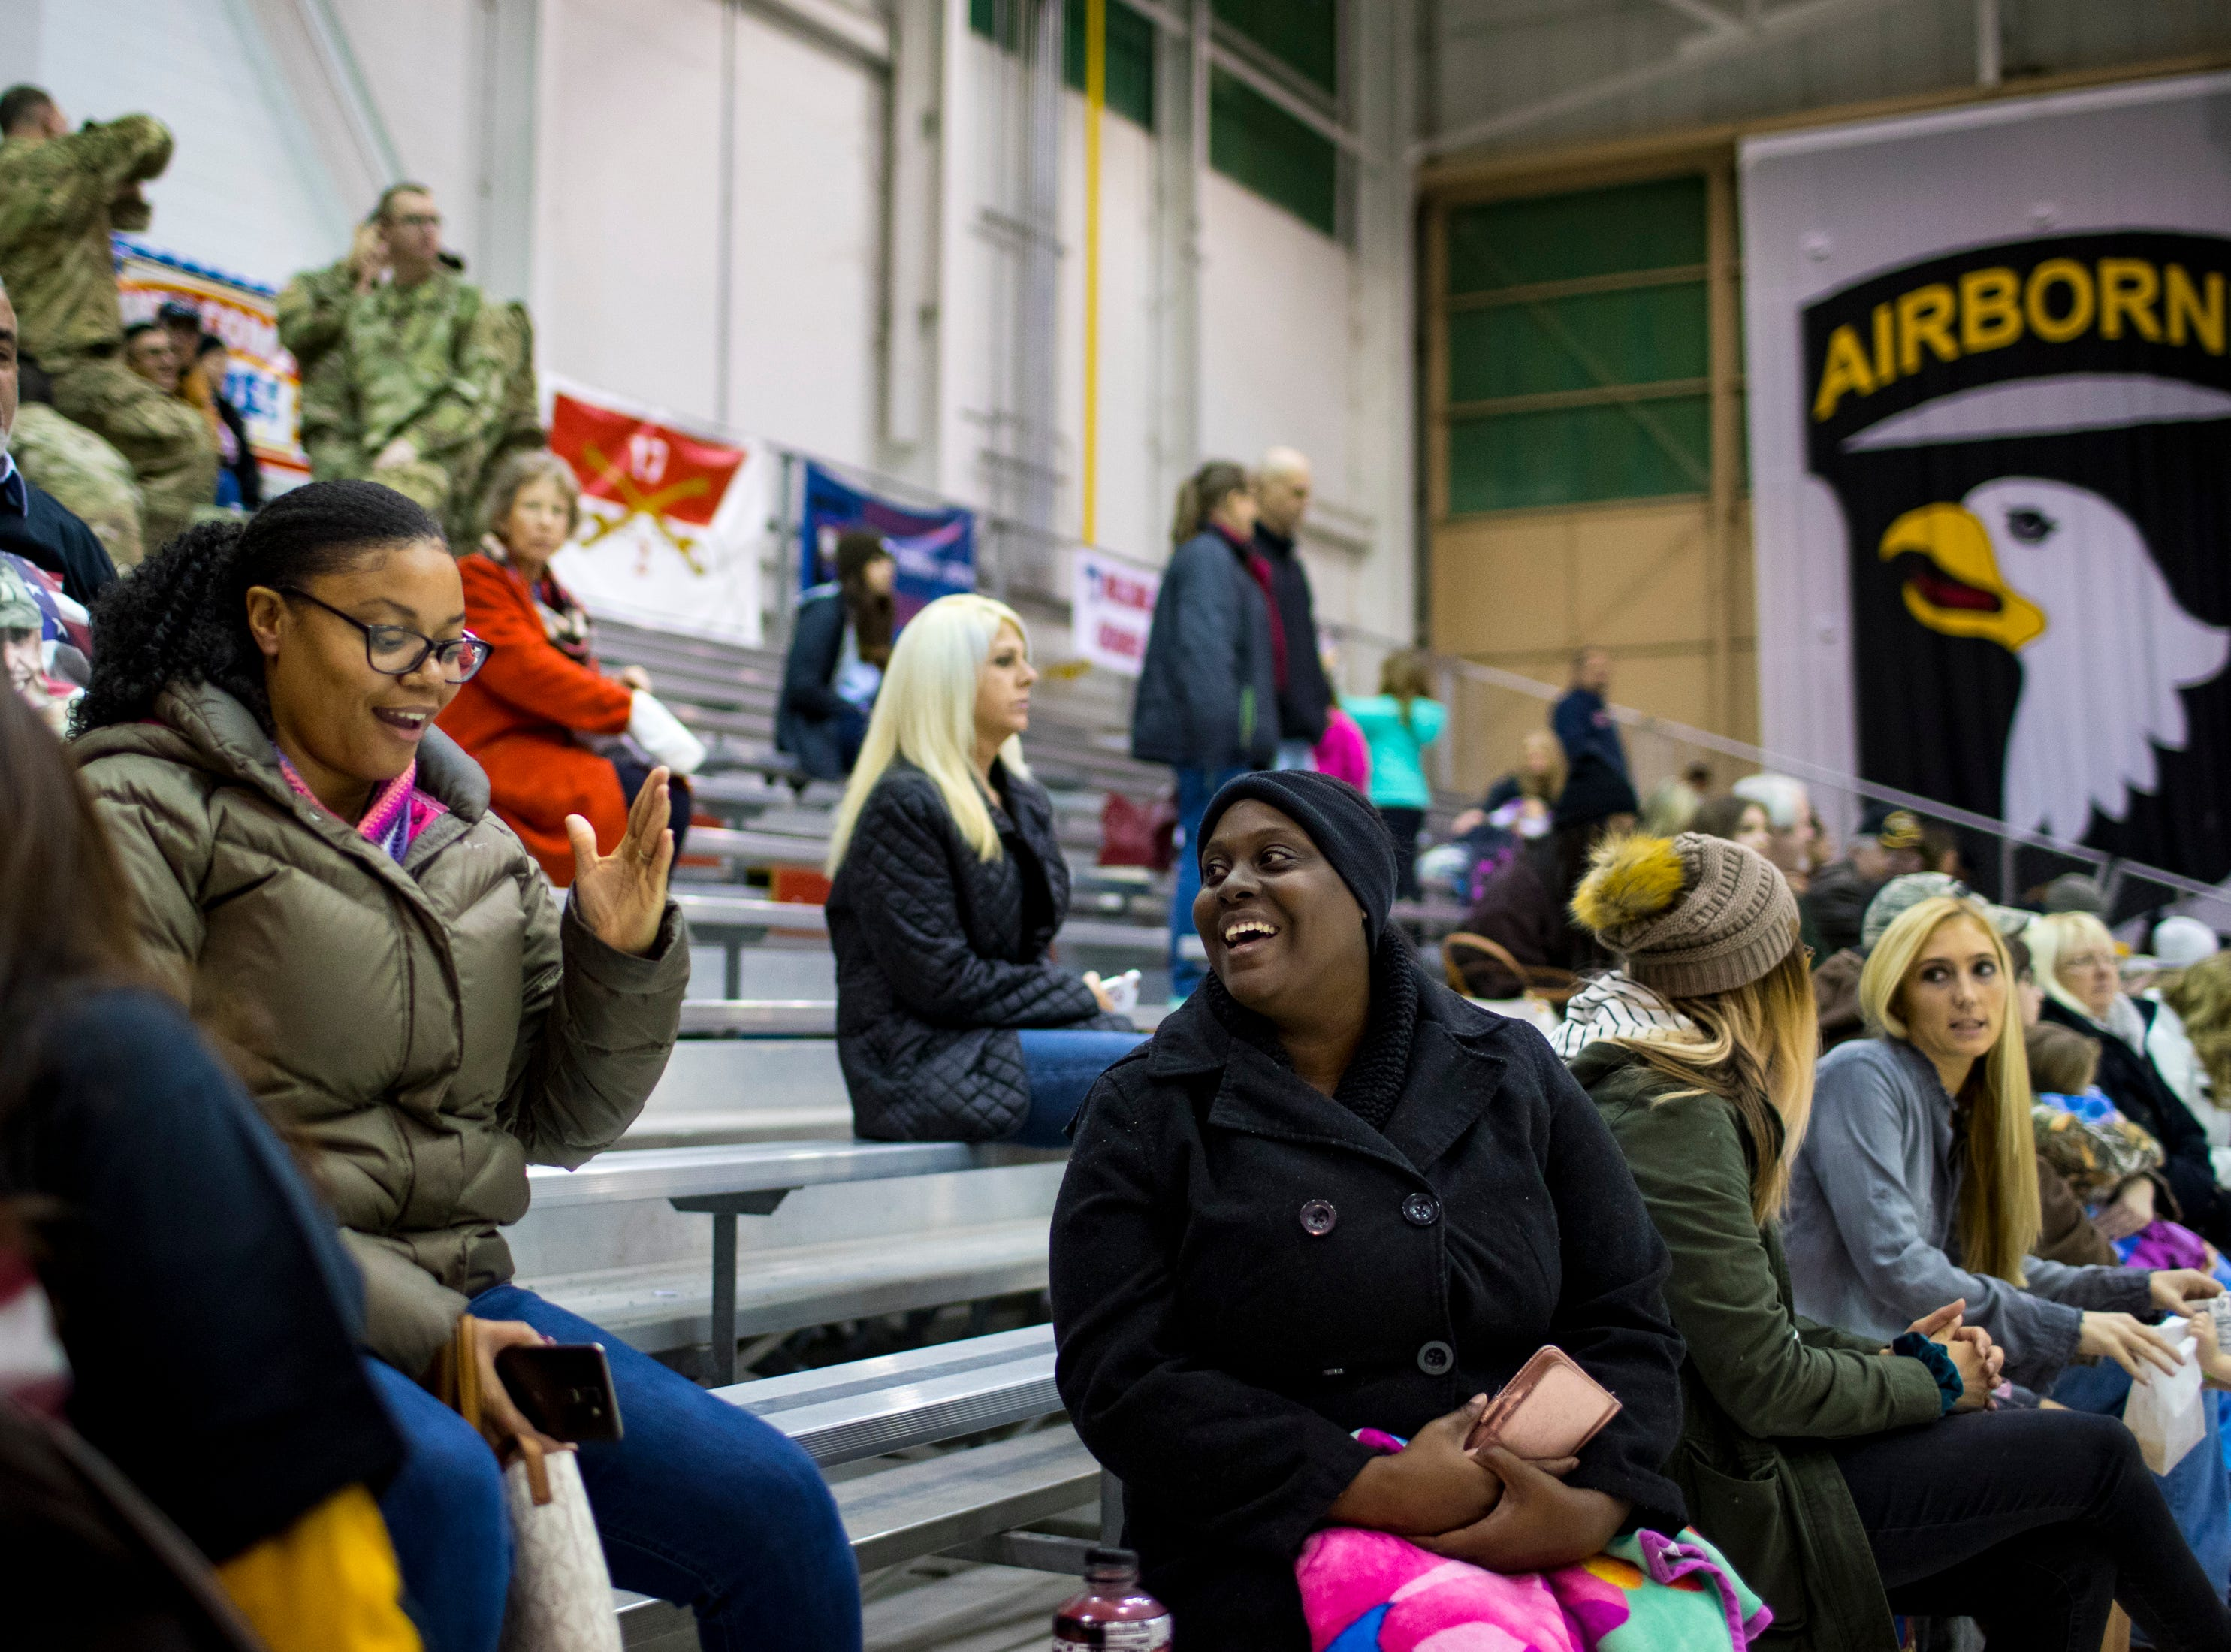 Bridgett Hill and Jasmine Turner chat while waiting for the plane carrying their husbands, Sgt. Jerry Hill and Sgt. 1st Class Wesley Turner, to arrive during the welcome home ceremony for the 2nd Battalion, 44th Air Defense Artillery Regiment and 101st Airborne Division at Fort Campbell in the early hours of Monday, Nov. 19, 2018. The soldiers were returning from a 9-month deployment in Afghanistan.